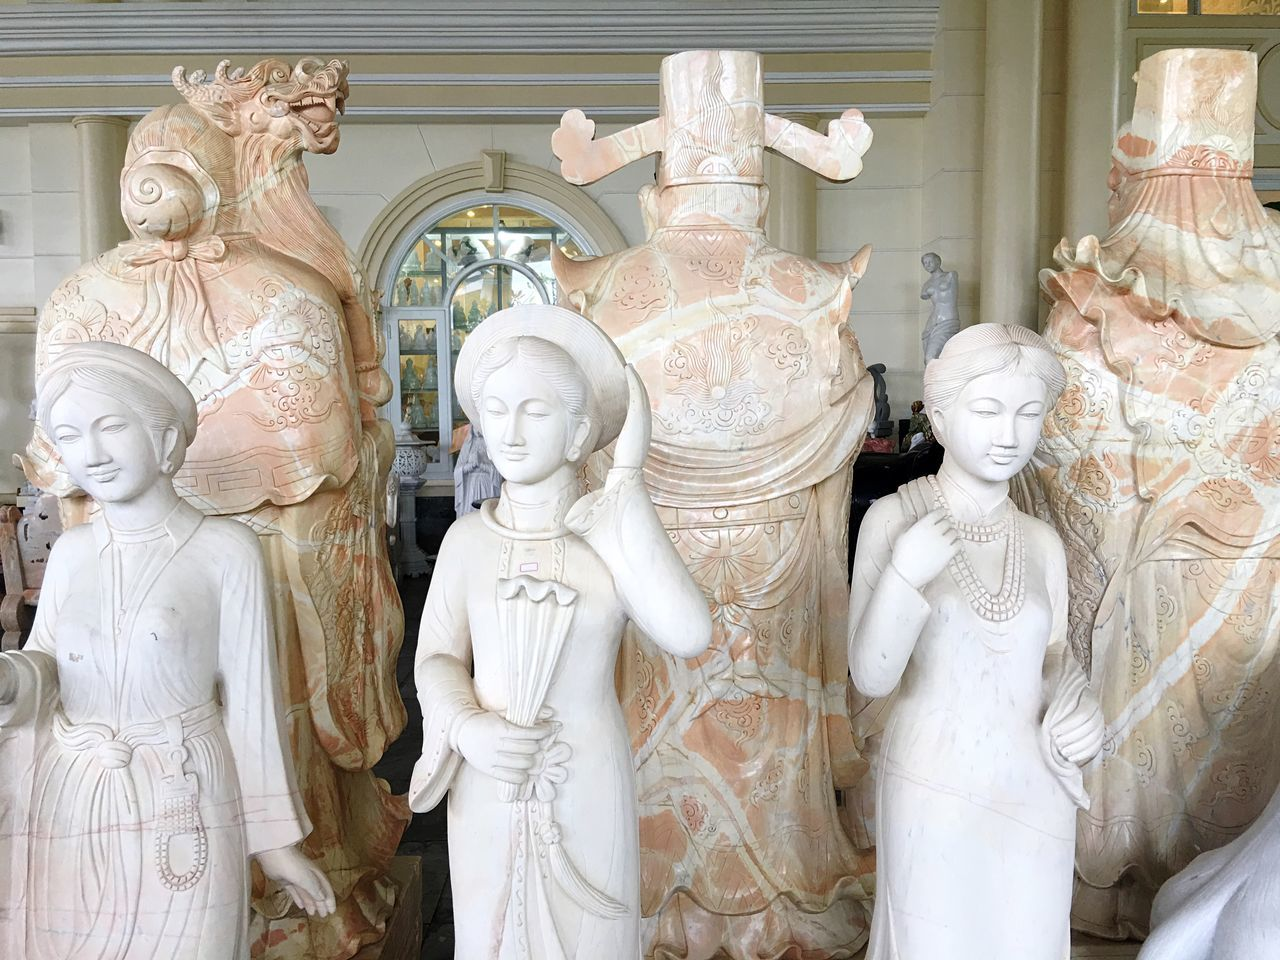 Marble sculptures Statue Human Representation Sculpture Marble Sculpture Marble Statue Marble Man Made Plenty Of Them